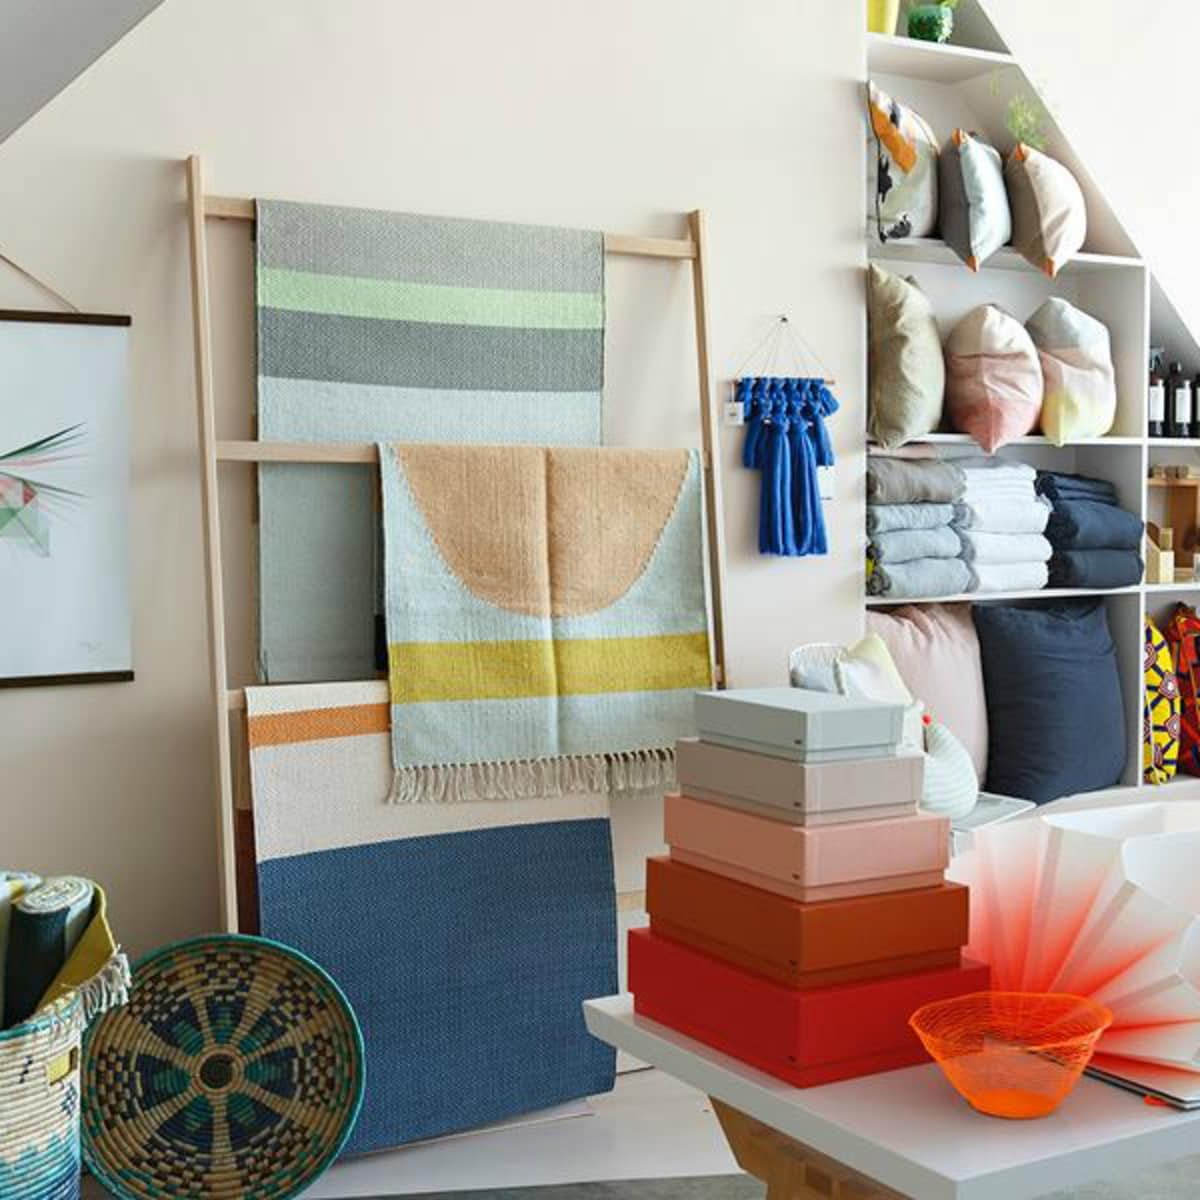 5 Stylish Austin Shops For Unique Home Decor And Handmade